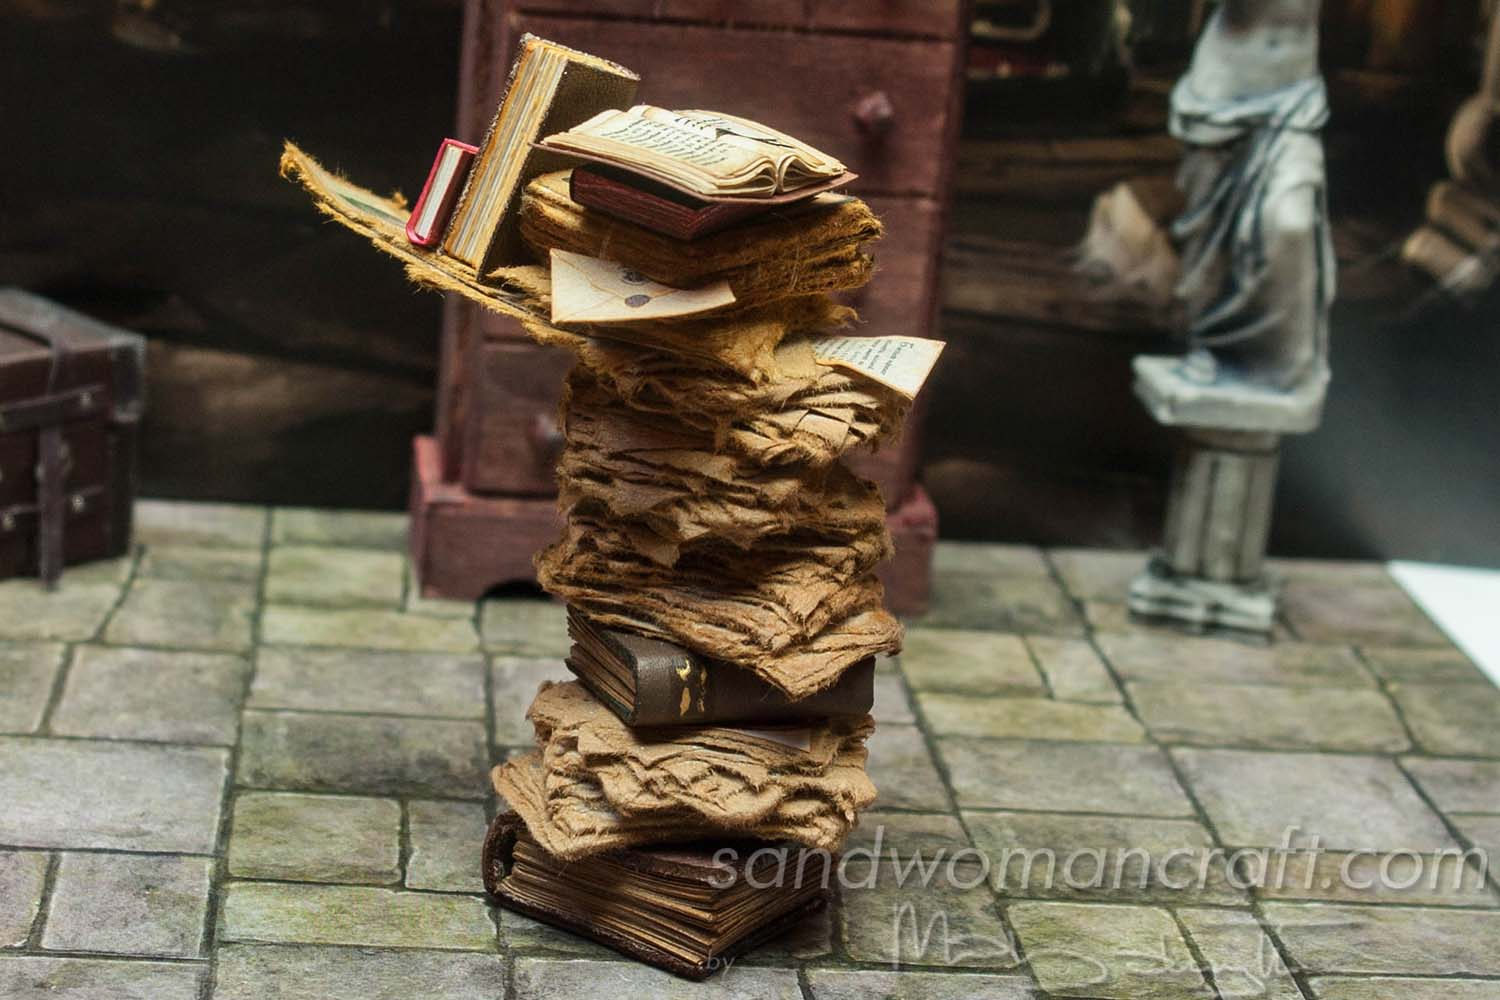 Miniature paper stack in 1:12 scale